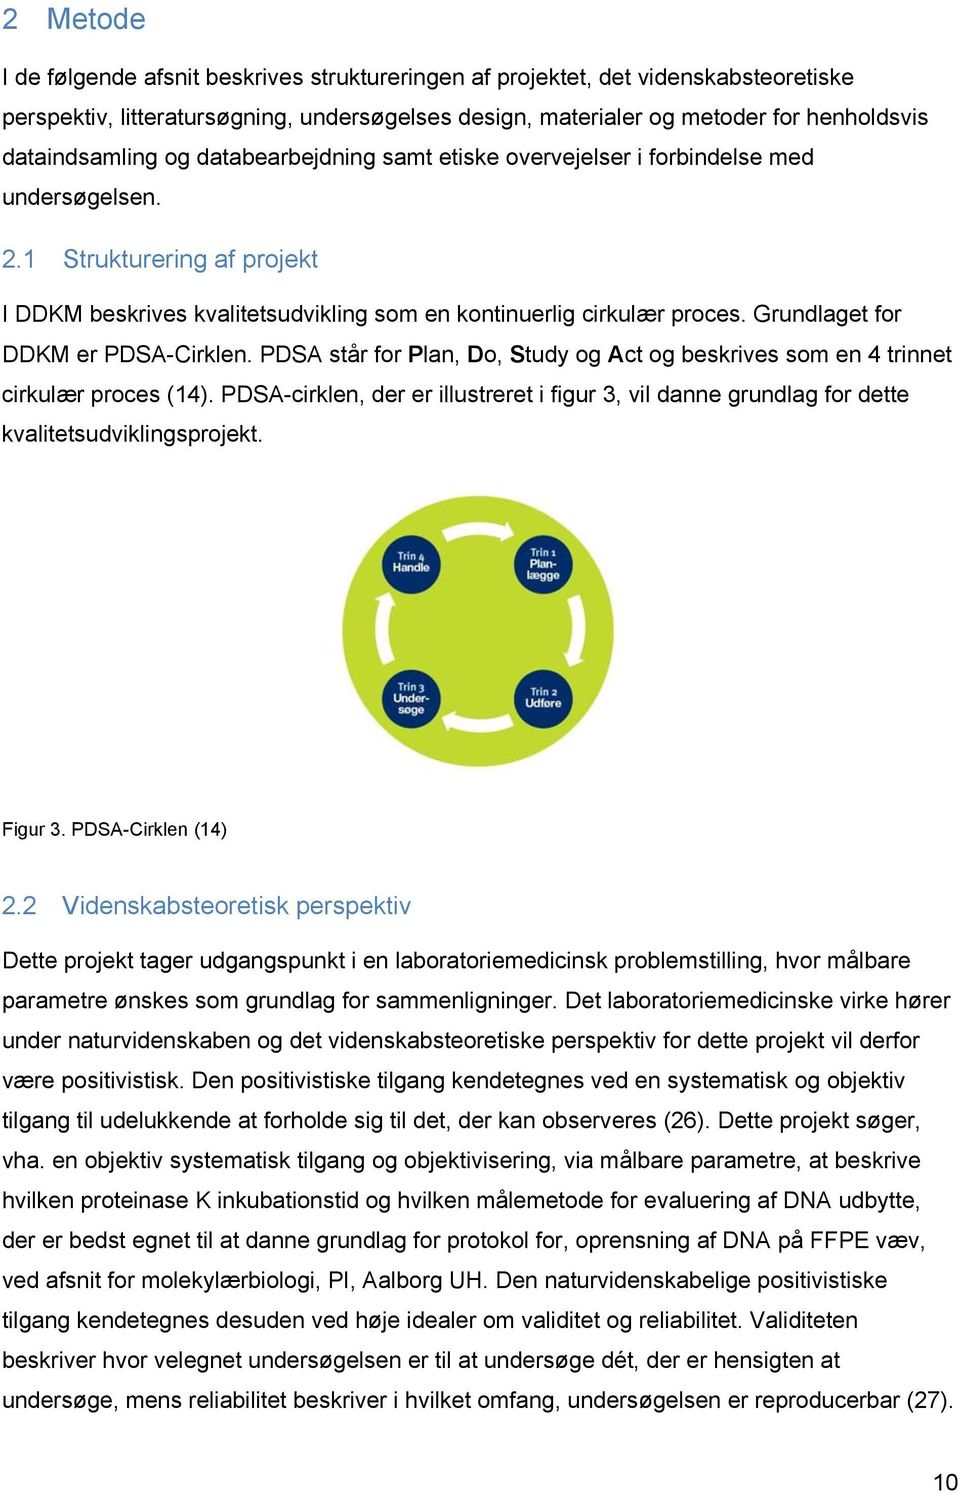 Grundlaget for DDKM er PDSA-Cirklen. PDSA står for Plan, Do, Study og Act og beskrives som en 4 trinnet cirkulær proces (14).